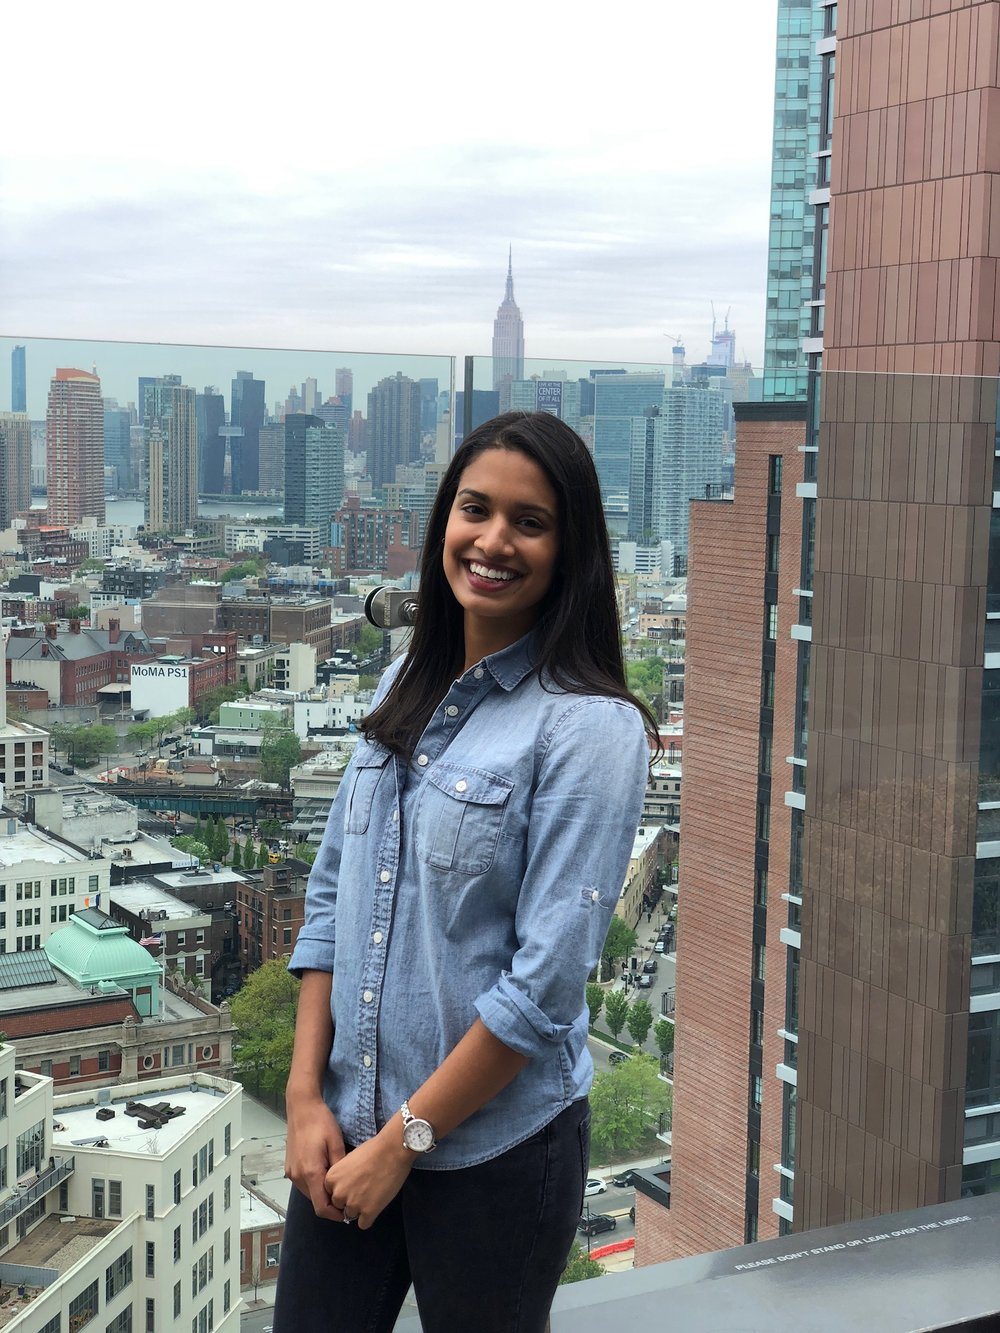 Andrea - New Yorker, born and bred but of Indian descent.Works in sales in the financial services industry.Loves dinner parties (as host or guest), street food, and live music.